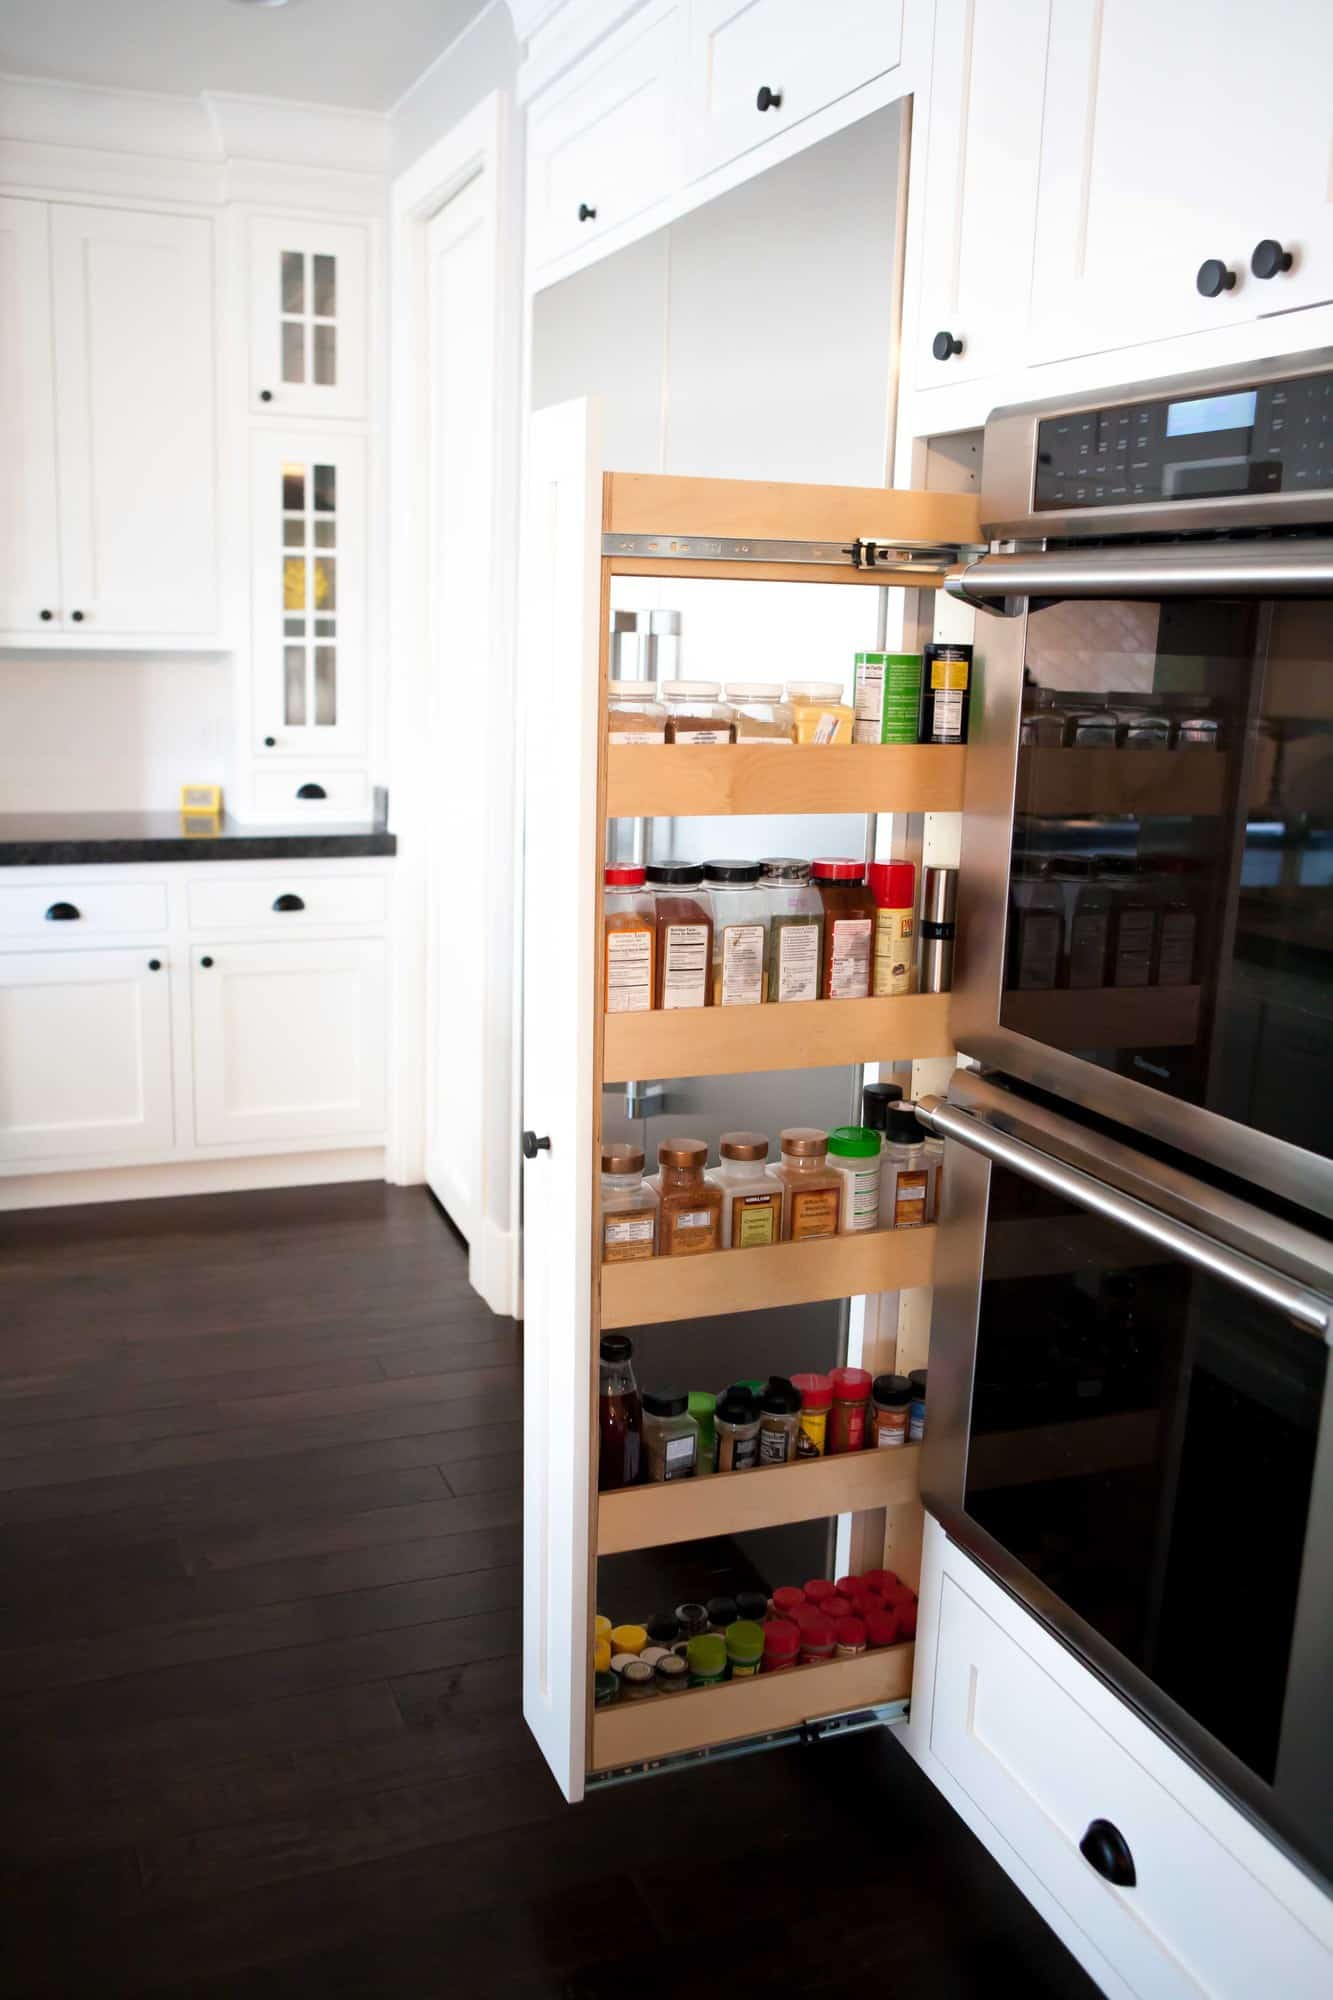 A rolling spice rack that is filled with spices that pulls out from the wall to the left of 2 ovens.